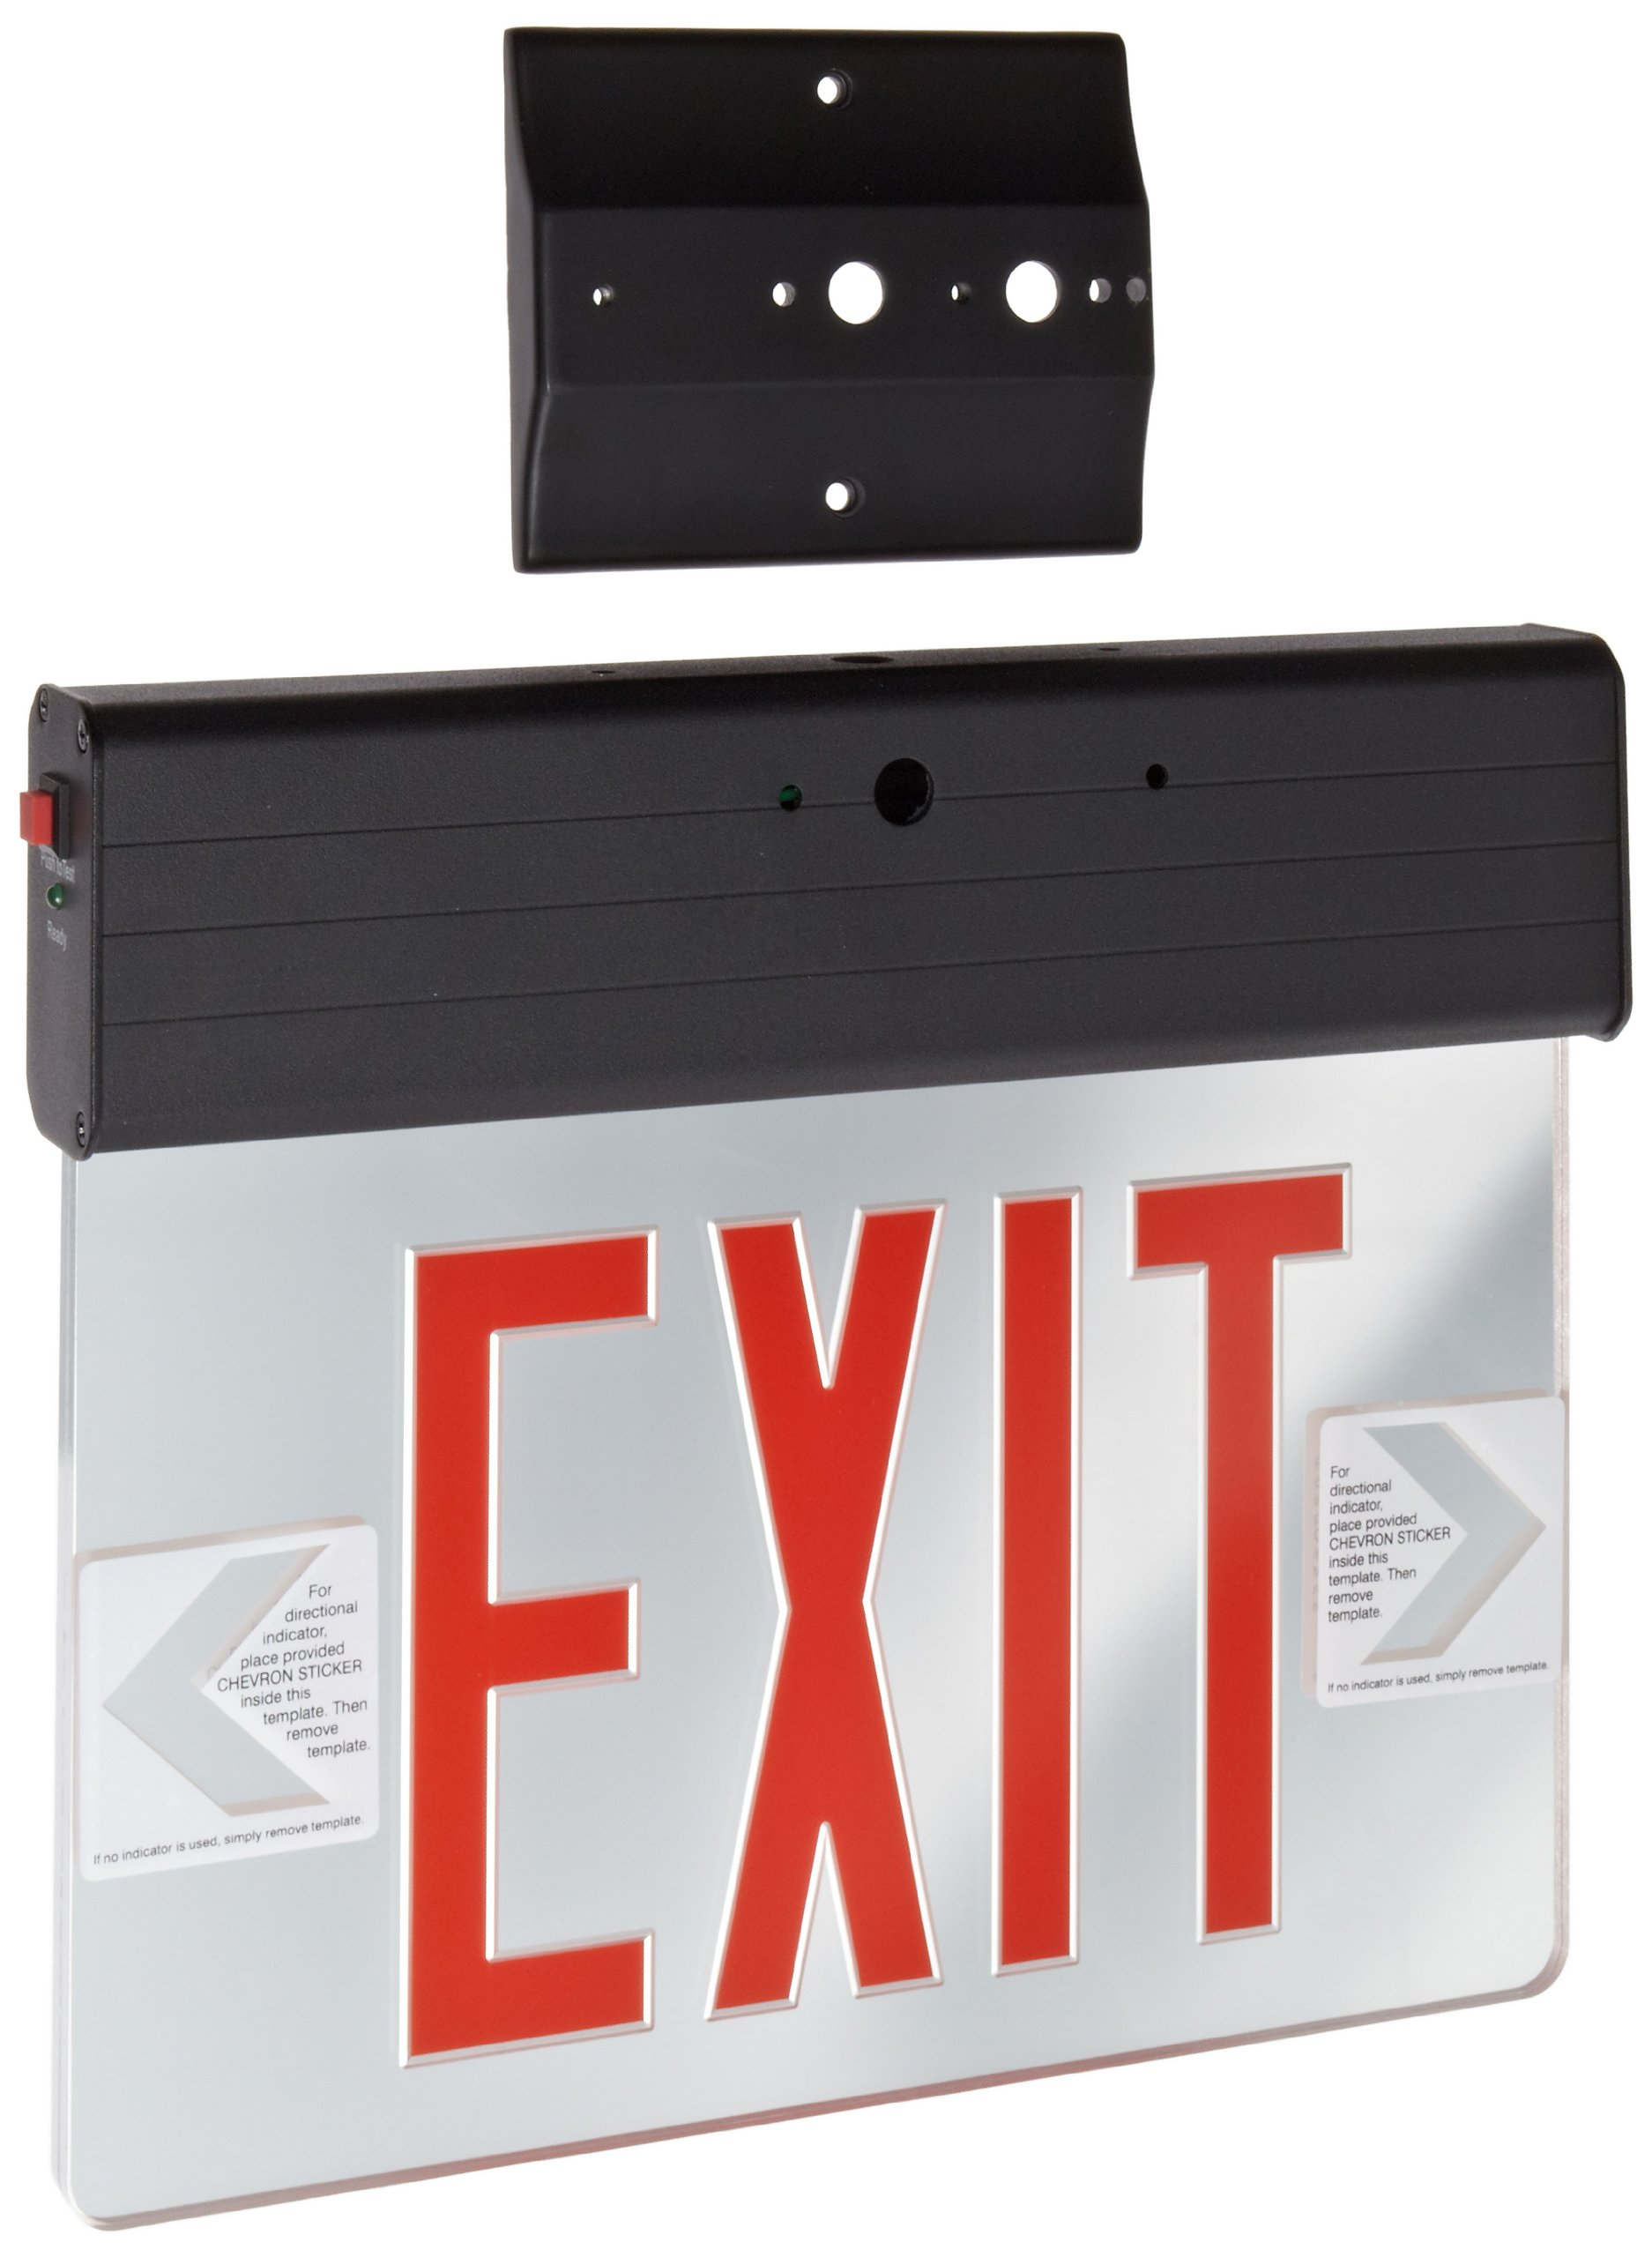 Morris Products LED Exit Sign – Surface Mount Edge – Red on Clear Panel, Black Housing – Compact, Low-Profile Design – Single Side Legend – Energy Efficient, High Output – 1 Count